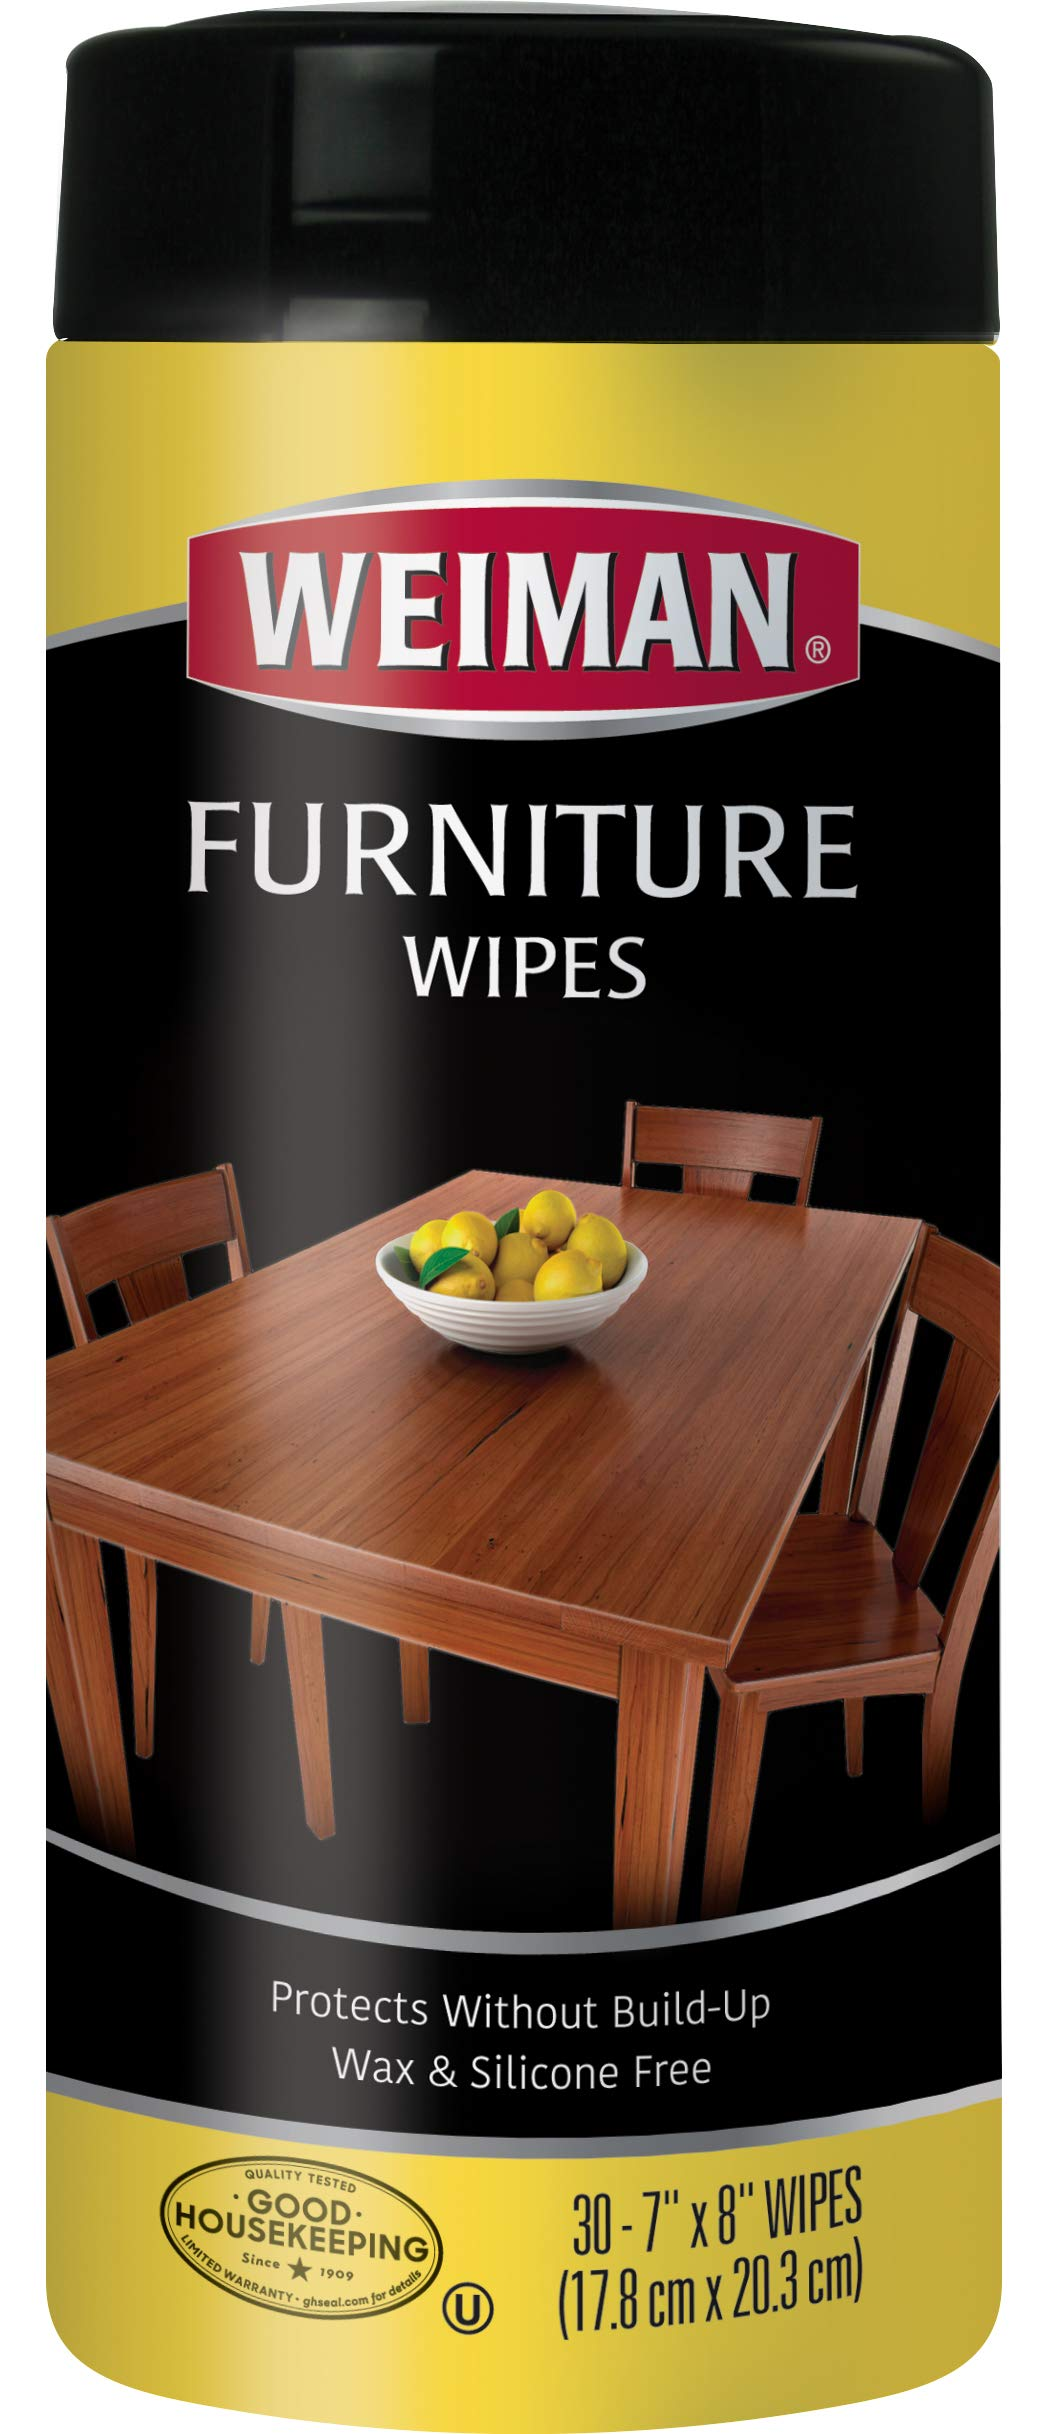 Weiman Wood Cleaner and Polishing Wipes - For Furniture To Beautify &  Protect, No Build - Amazon.com: Weiman Wood Cleaner And Polish - Fresh Lemon Scent - 12